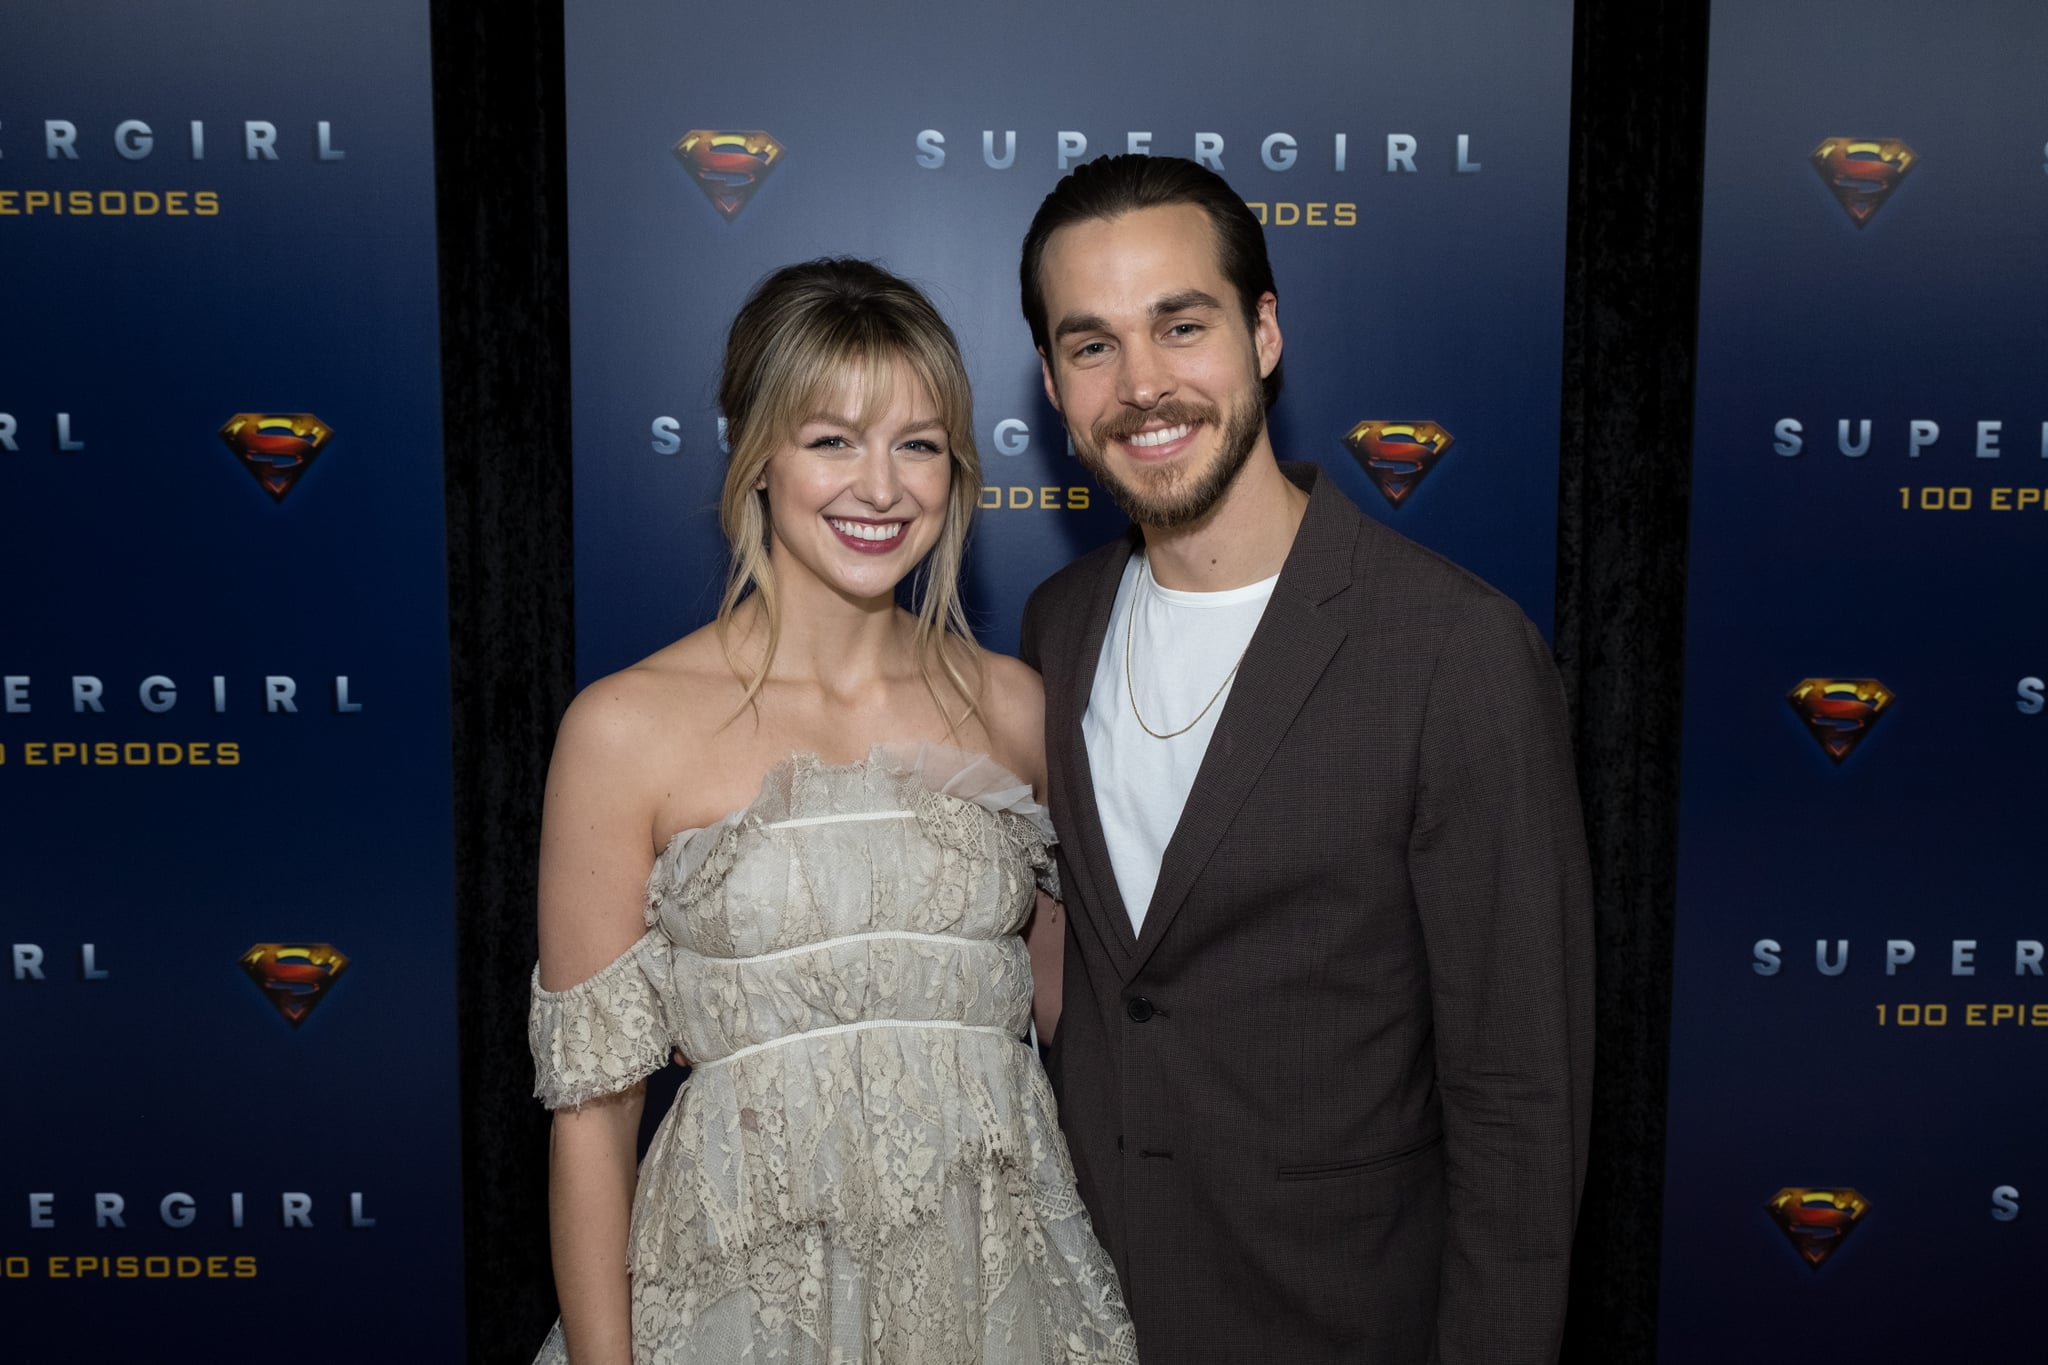 VANCOUVER, BC - DECEMBER 14: (L-R) Supergirl star Melissa Benoist and actor Chris Wood attend the red carpet for the shows 100th episode celebration at the Fairmont Pacific Rim Hotel on December 14, 2019 in Vancouver, Canada. (Photo by Phillip Chin/Getty Images for Warner Brothers Television)